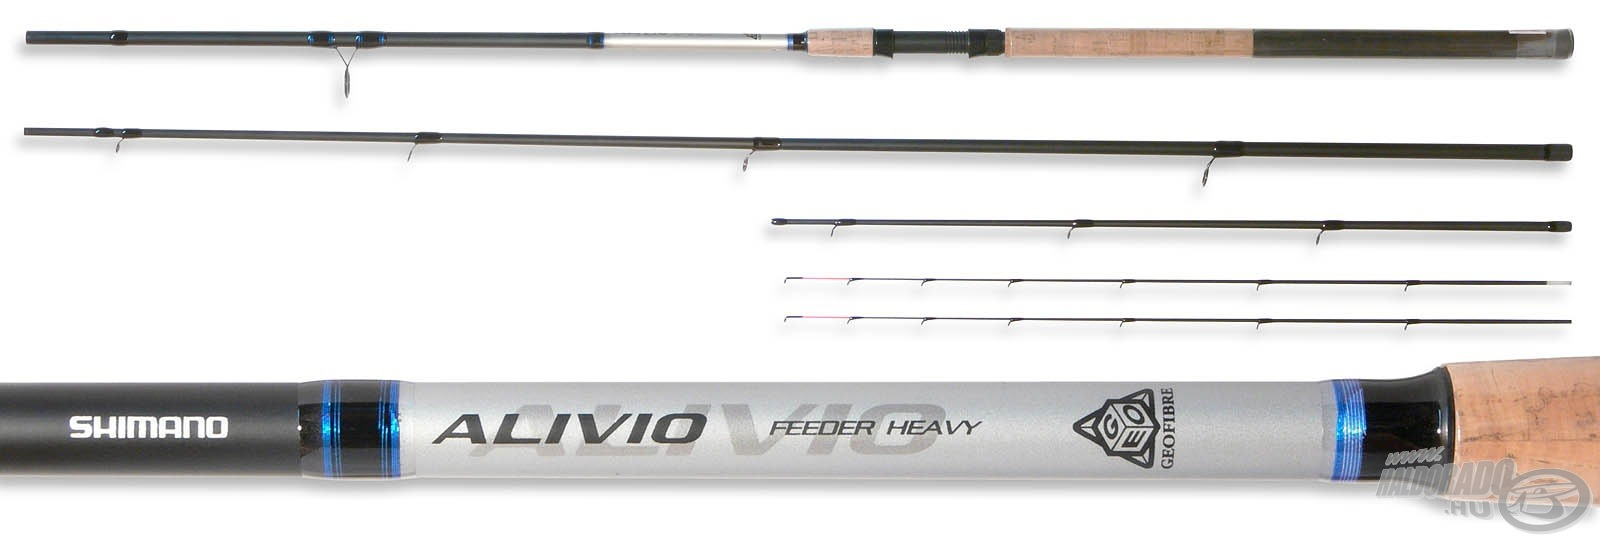 SHIMANO Alivio CX Heavy feeder 24990 helyett 19990Ft